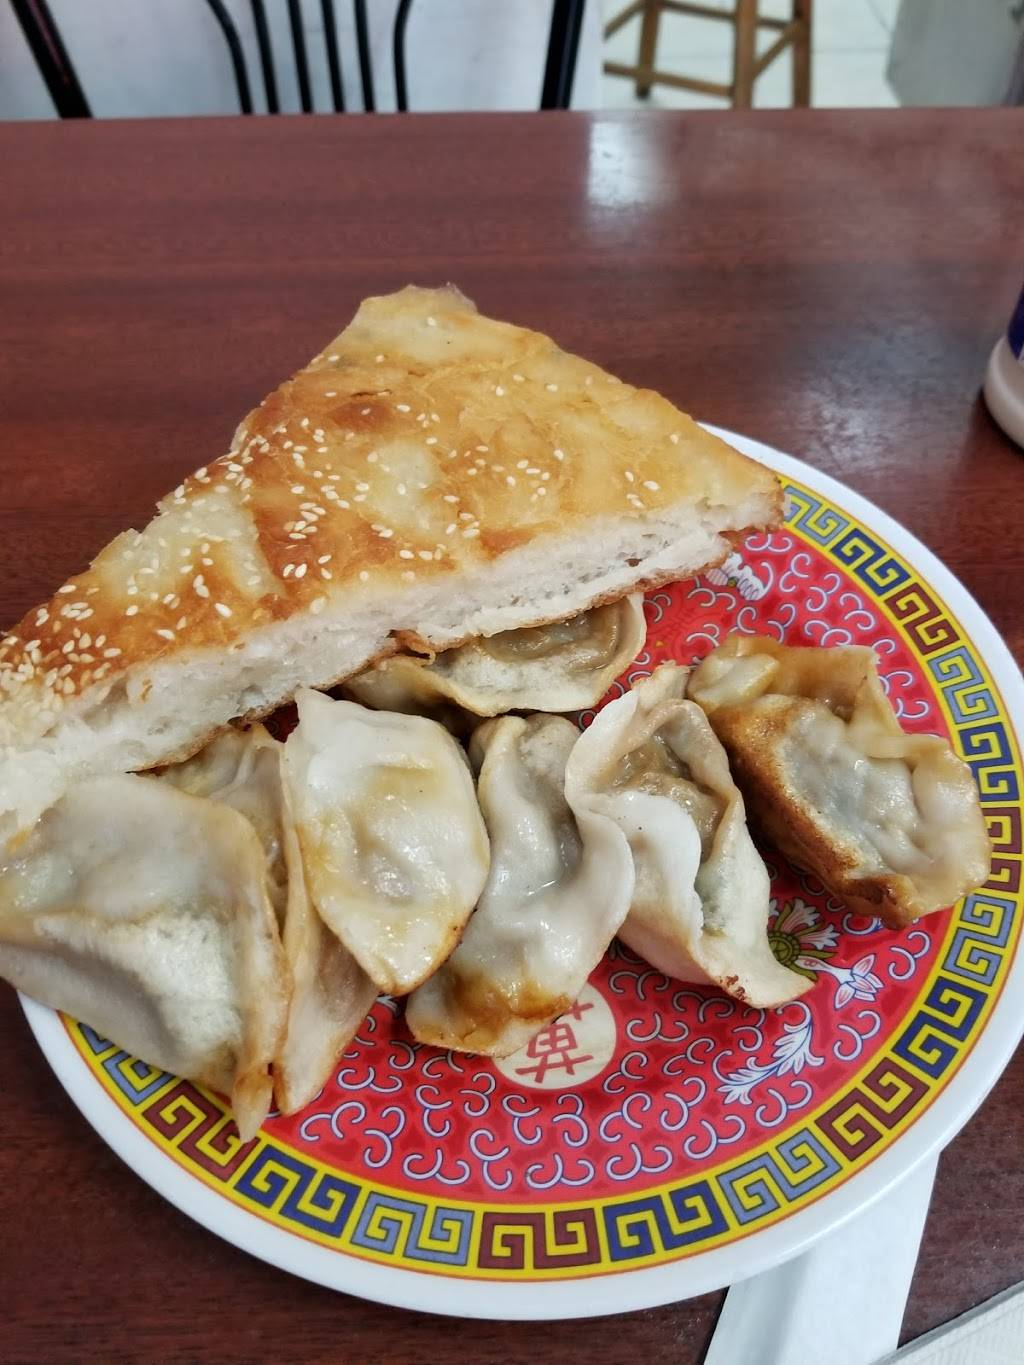 North Dumpling | restaurant | 27A Essex St, New York, NY 10002, USA | 6464218823 OR +1 646-421-8823